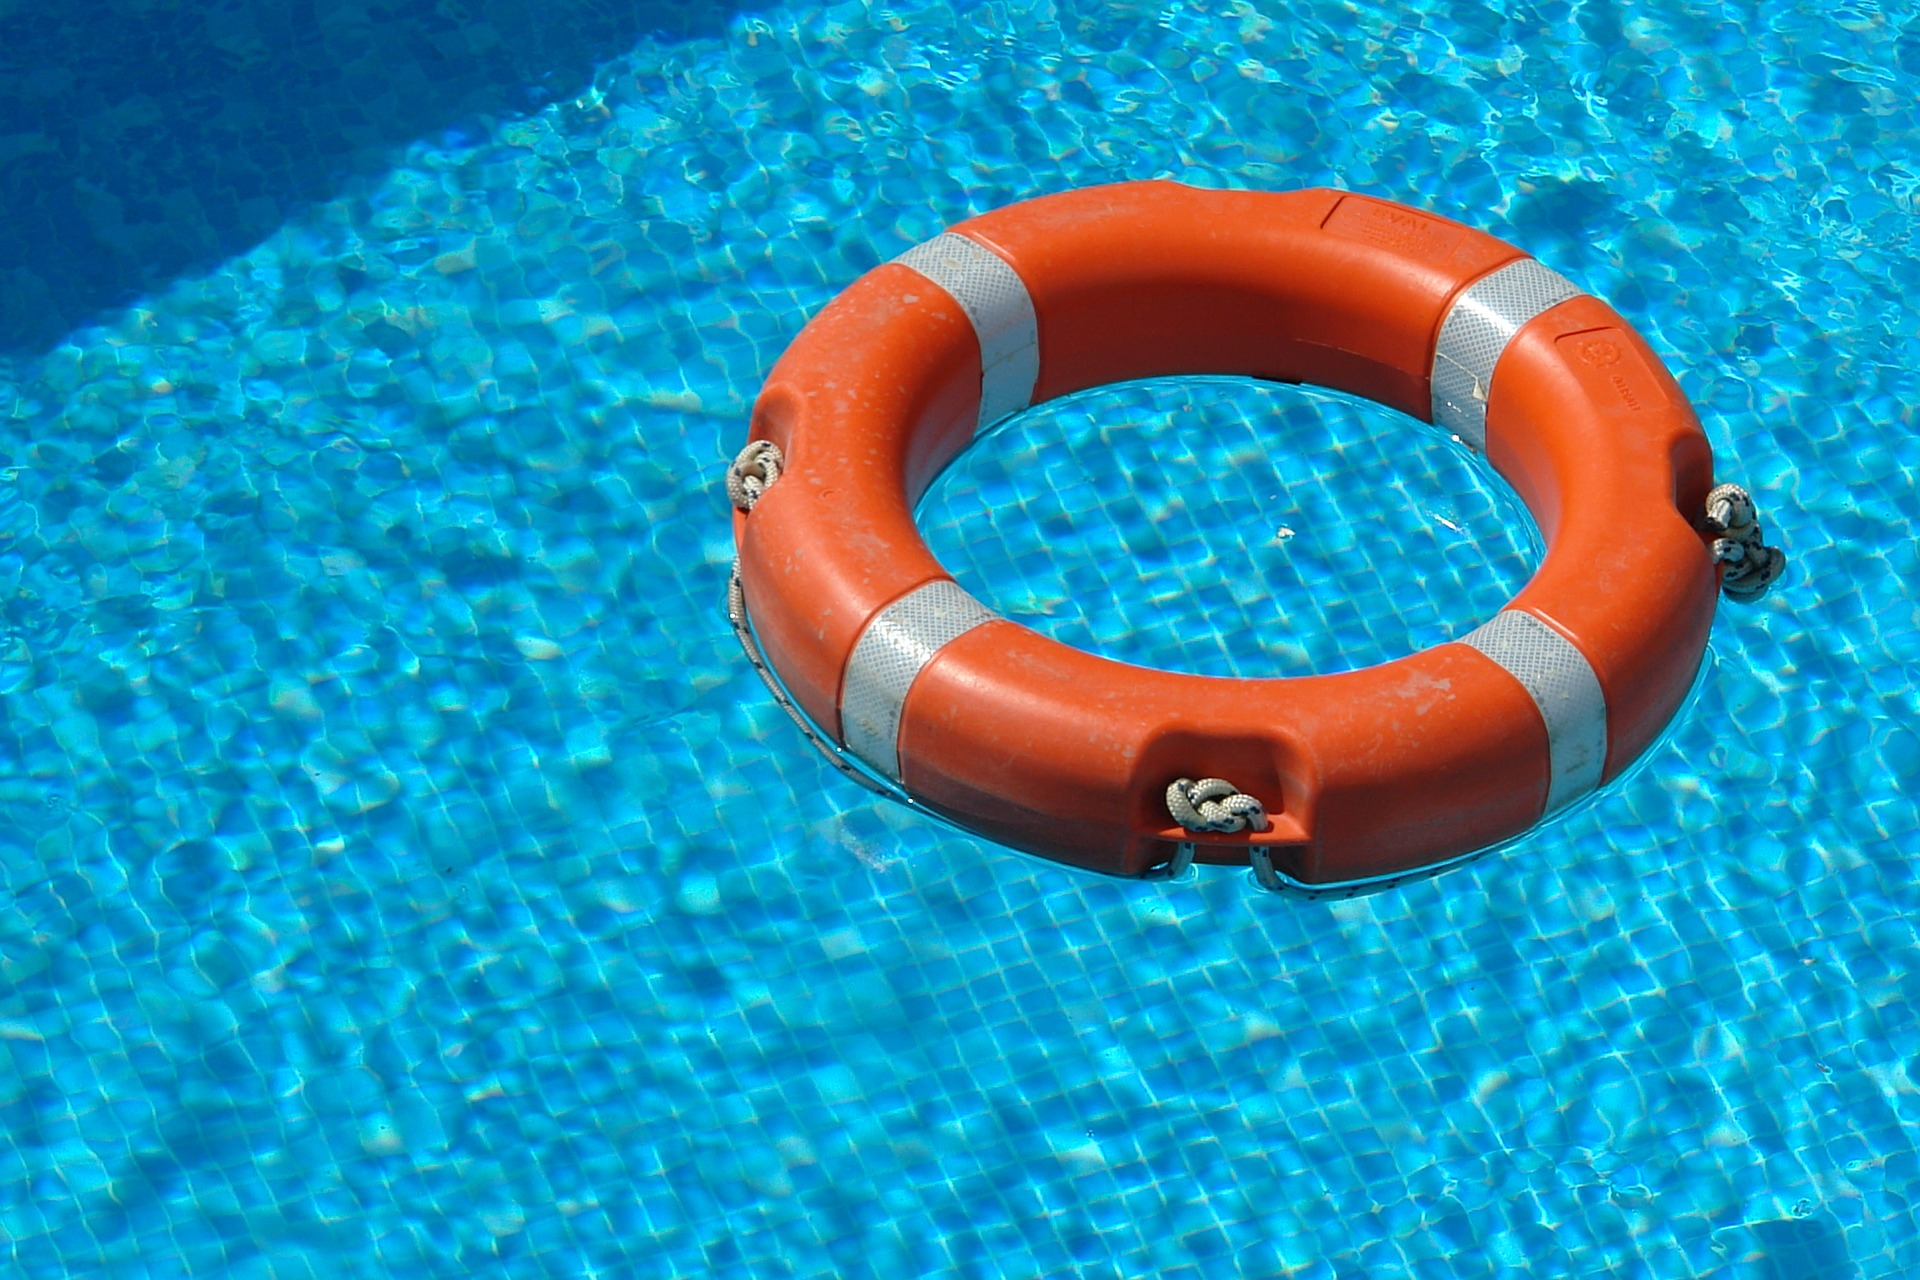 What To Look For With a Pool Inspection